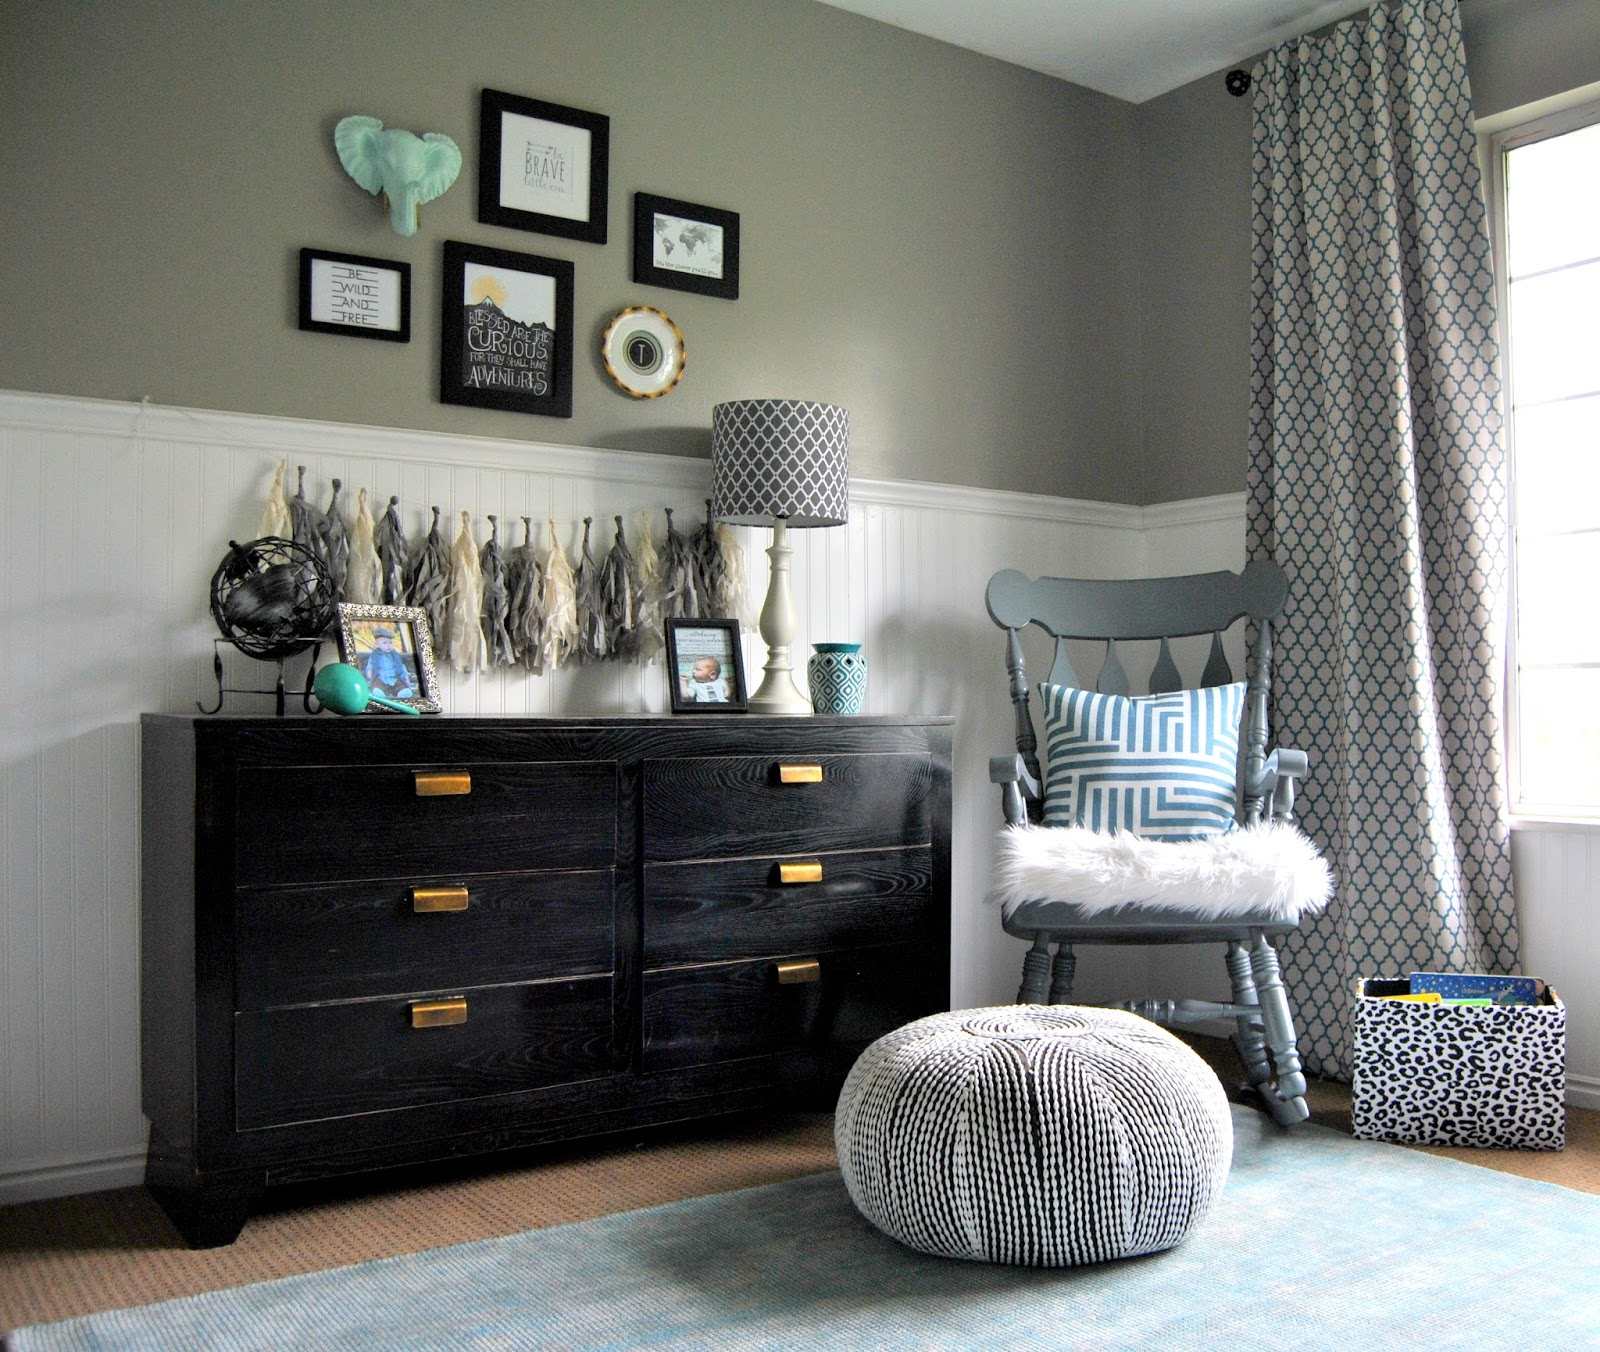 Studio 7 Interior Design Adventure Themed Nursery